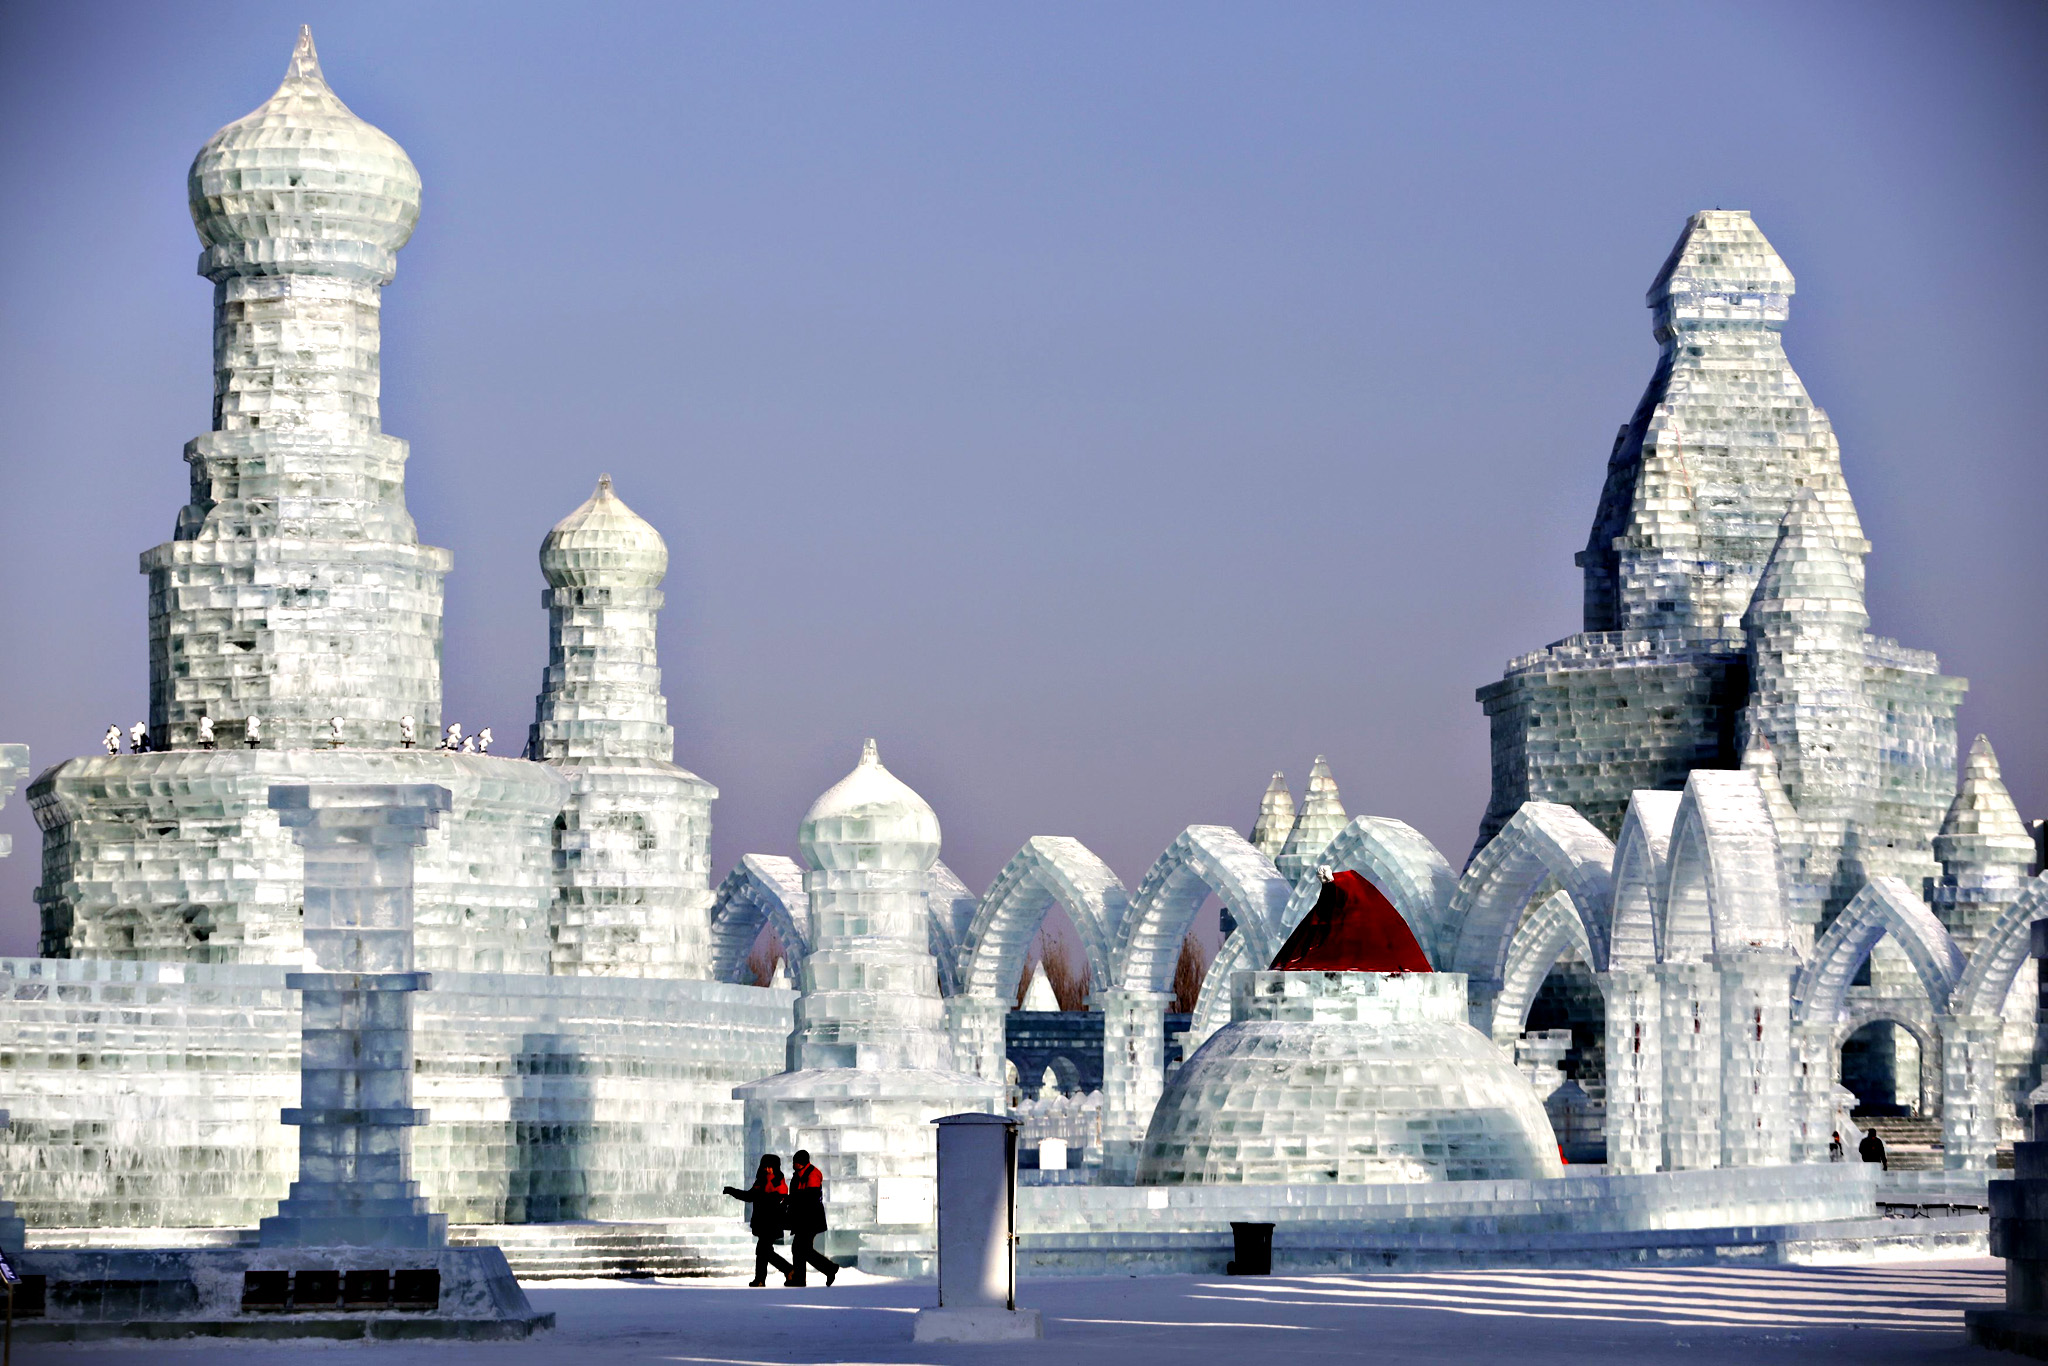 People look around ice sculptures ahead of the Harbin International Ice and Snow Festival in the northern city of Harbin, Heilongjiang province, January 4, 2016.